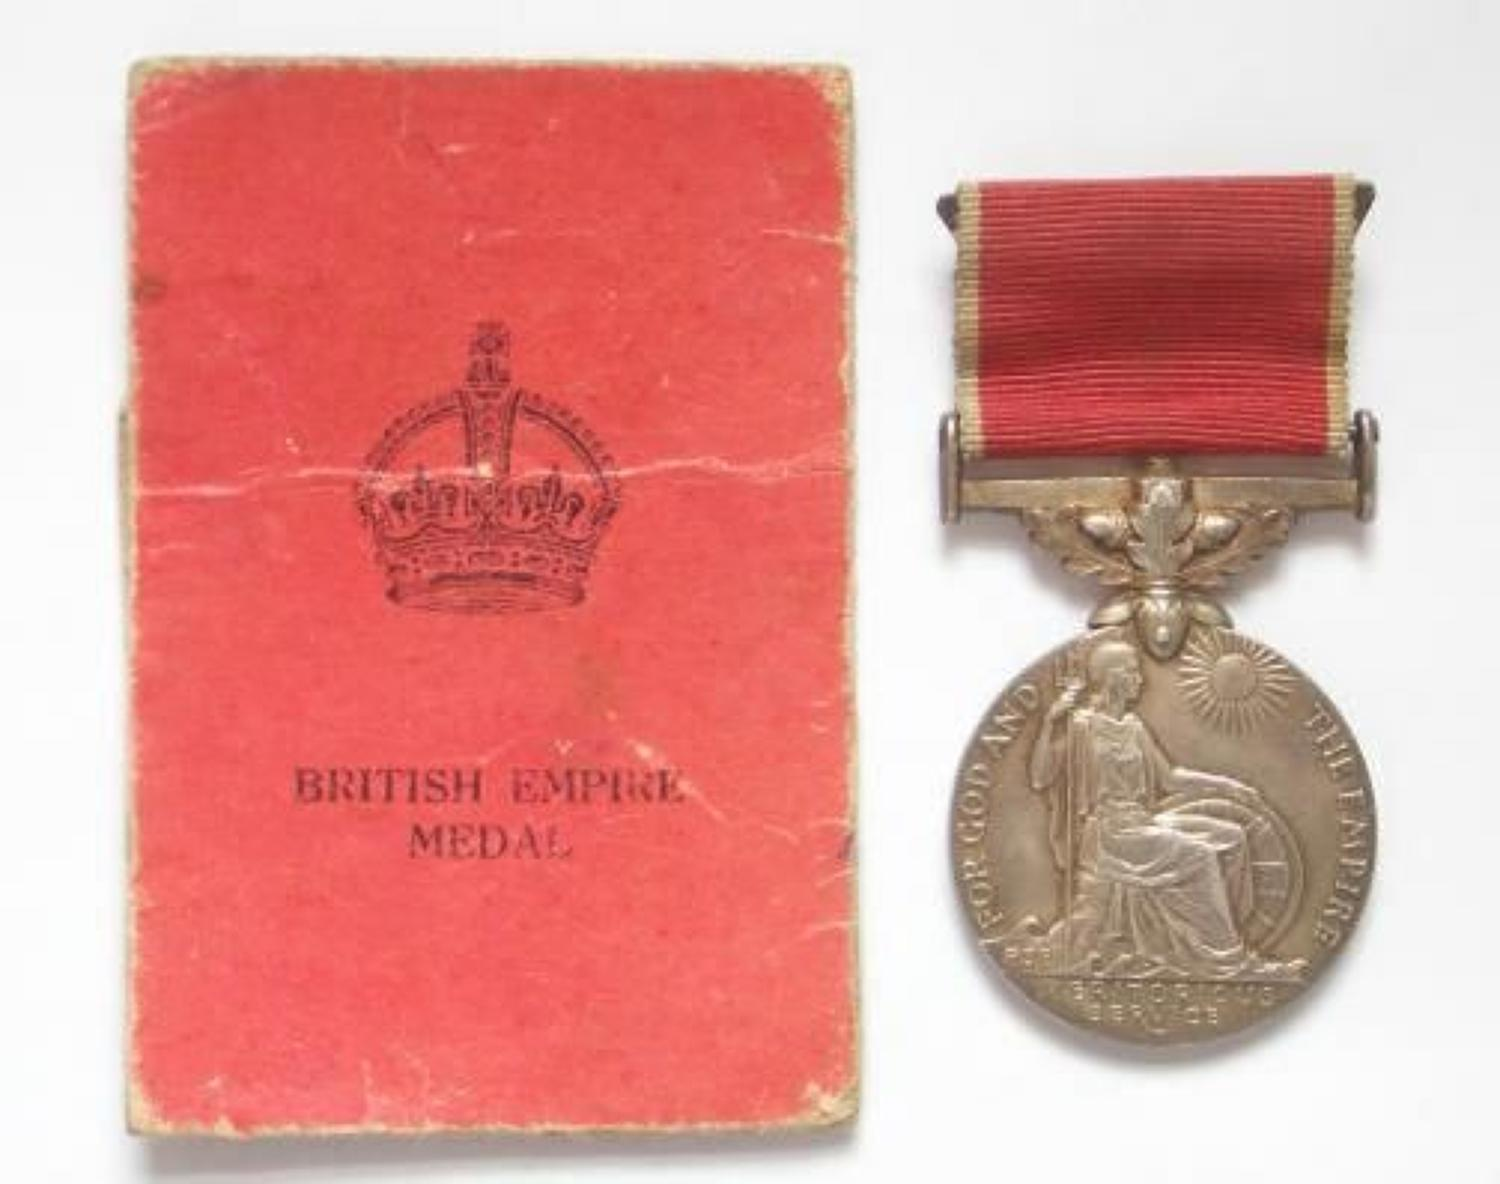 WW2 Navy Army & Air Forces Institutes NAAFI 1944 British Empire Medal.